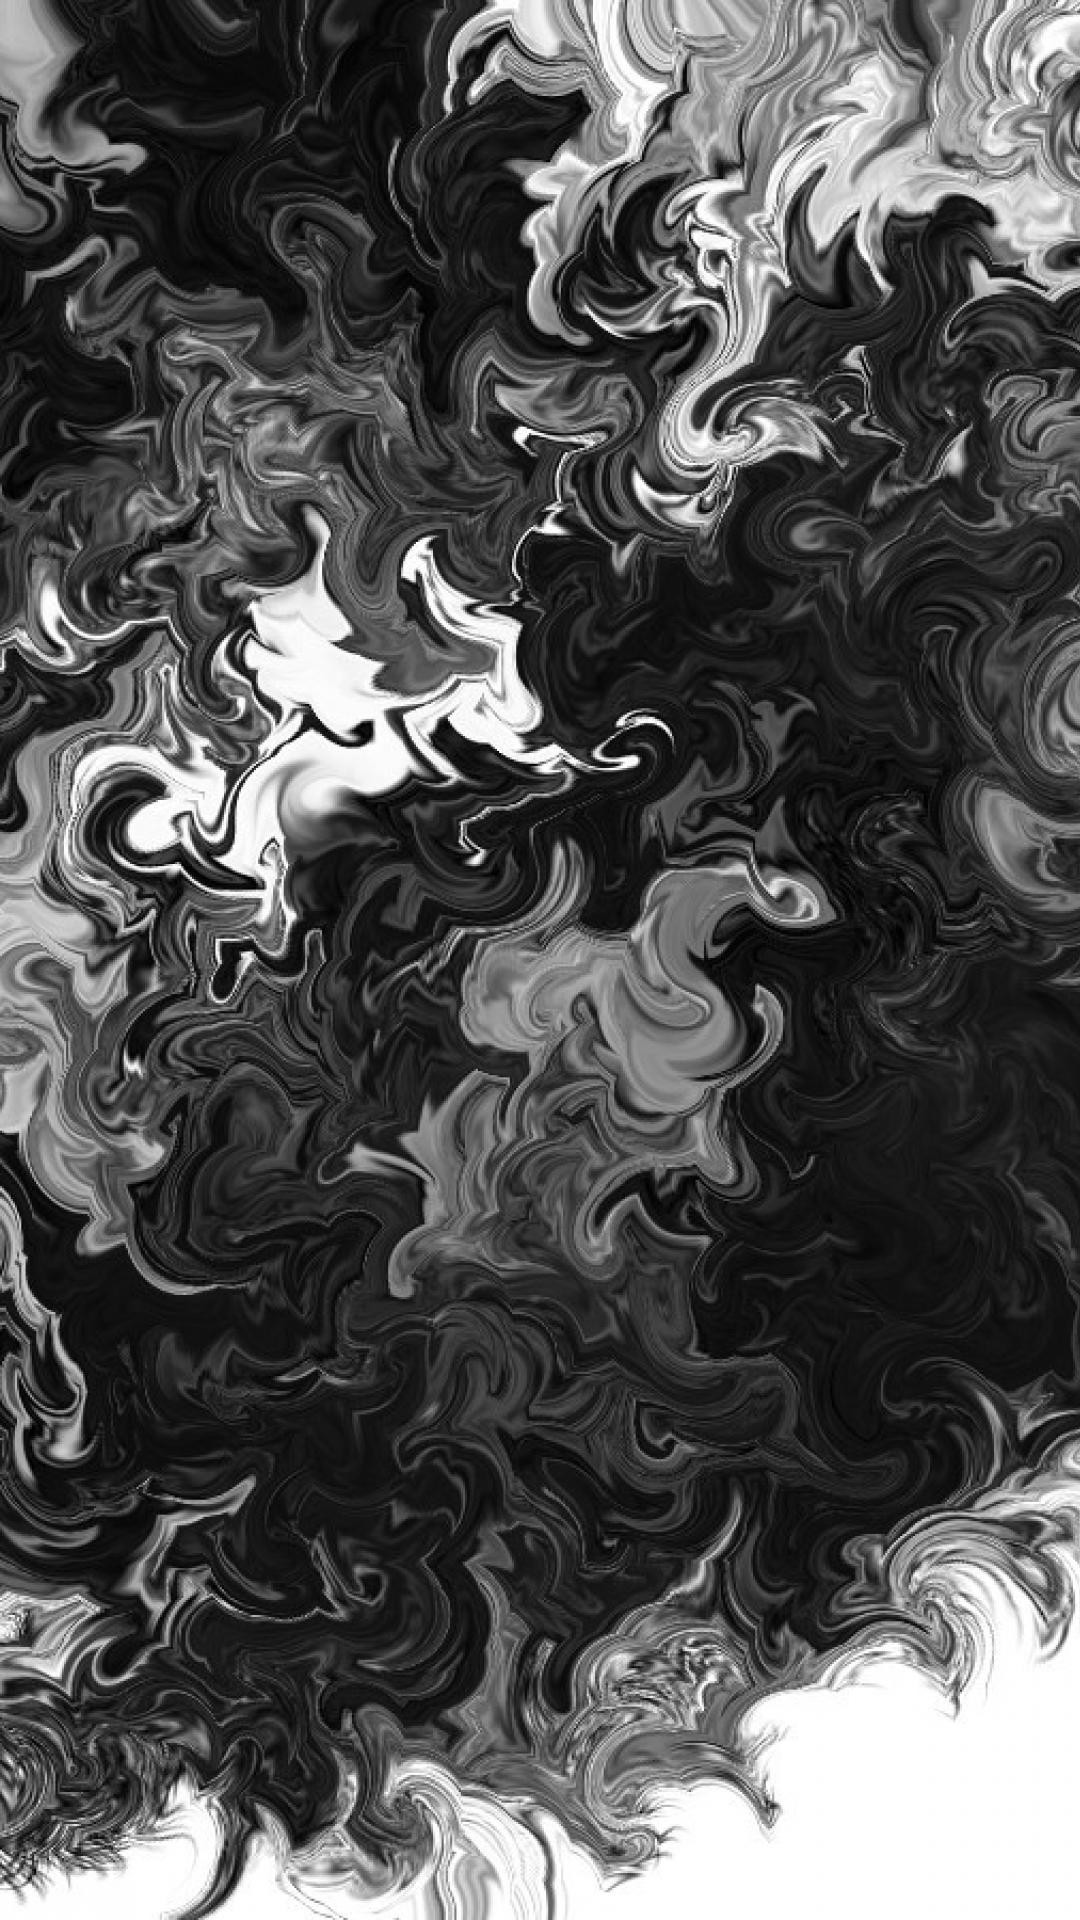 oibRiw black white abstract iphone 6 plus wallpaper data